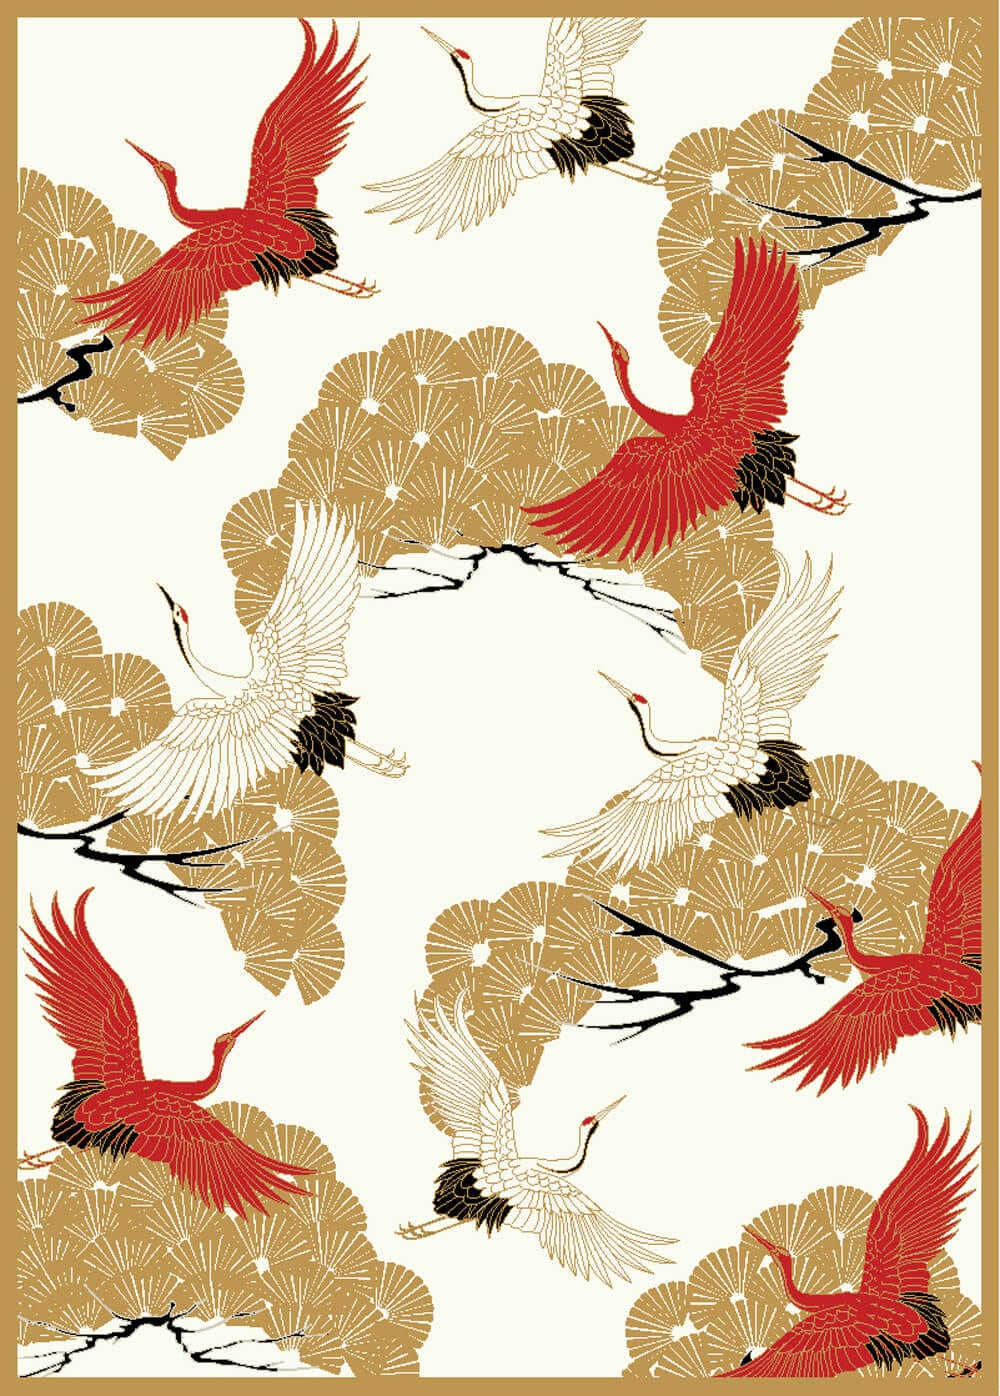 Cranes in trees is part of a new collection of chinoiserie rugs by Wendy Morrison.